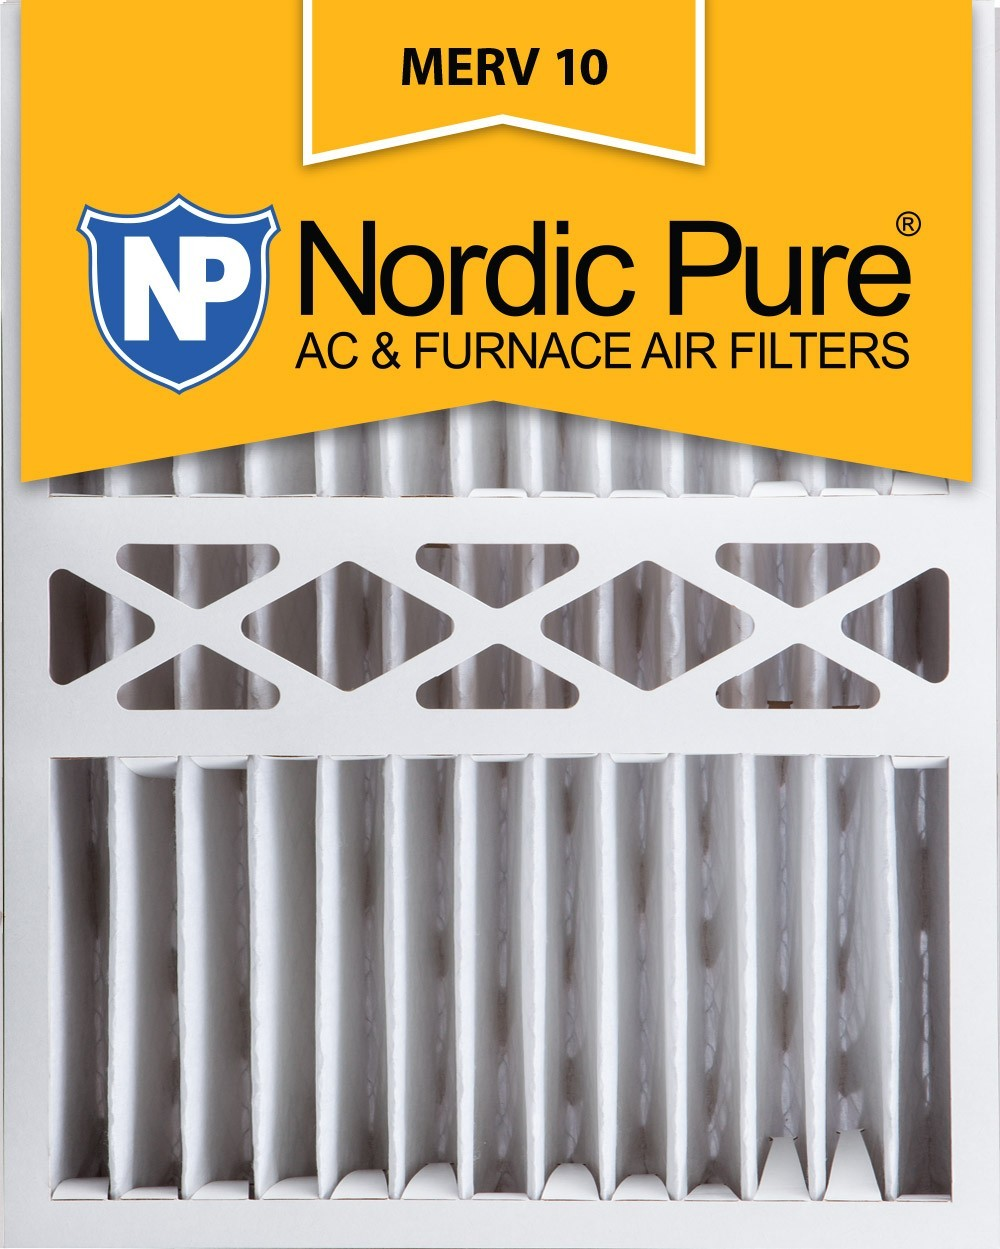 Nordic Pure MERV 10 5-in. Pleated Furnace Filters no6666